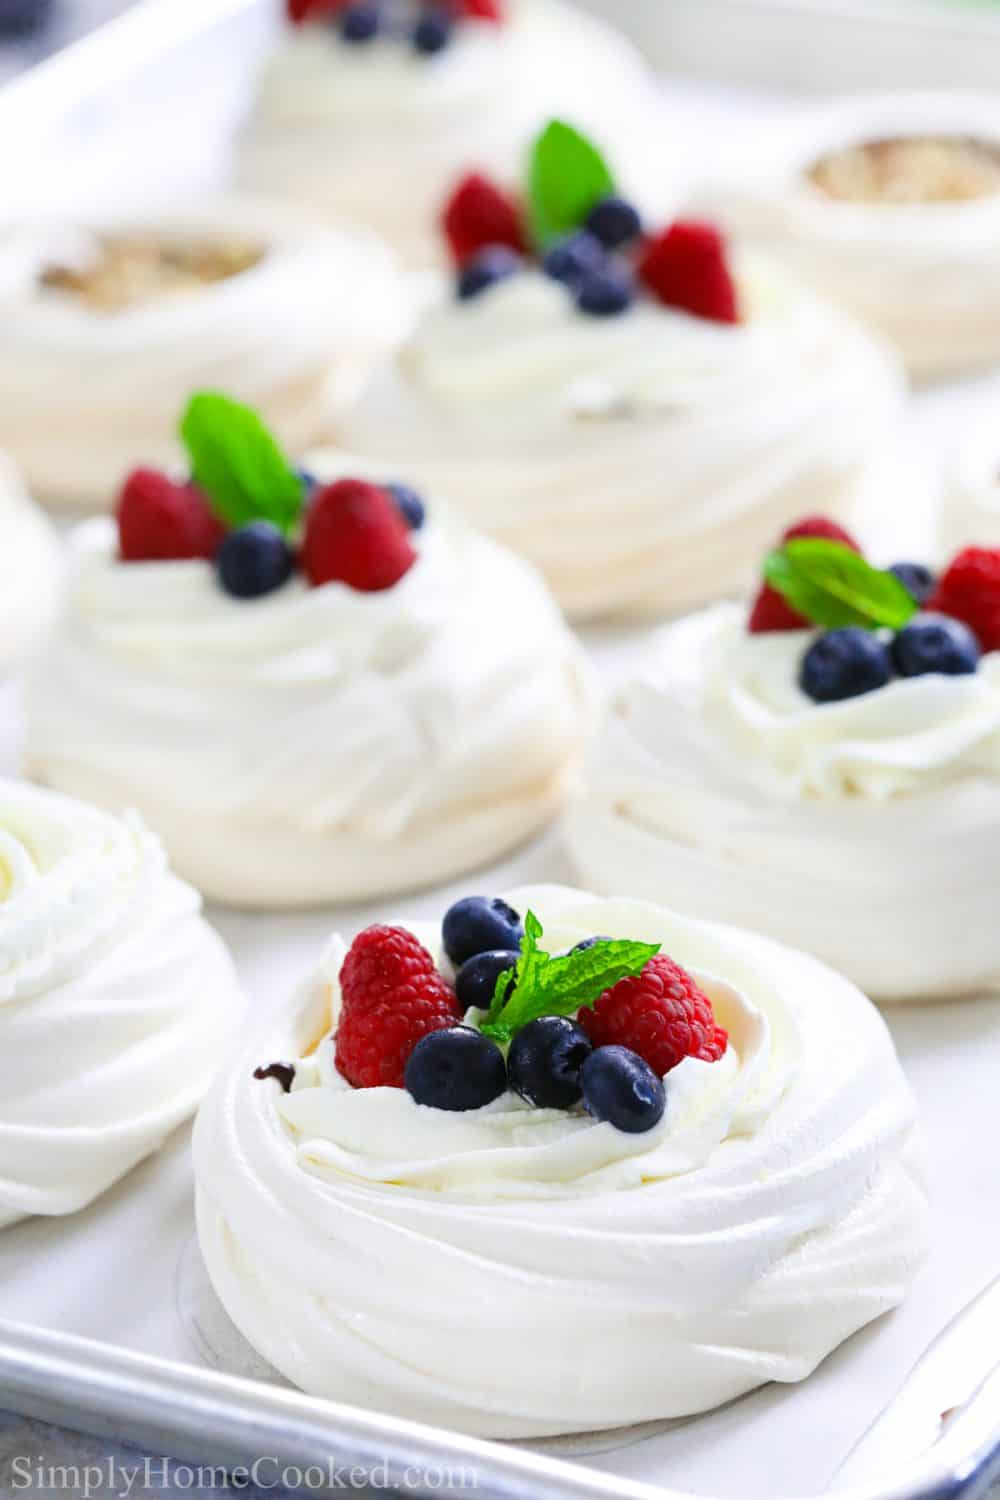 mini pavlovas with whipped cream, berries, and mint on top